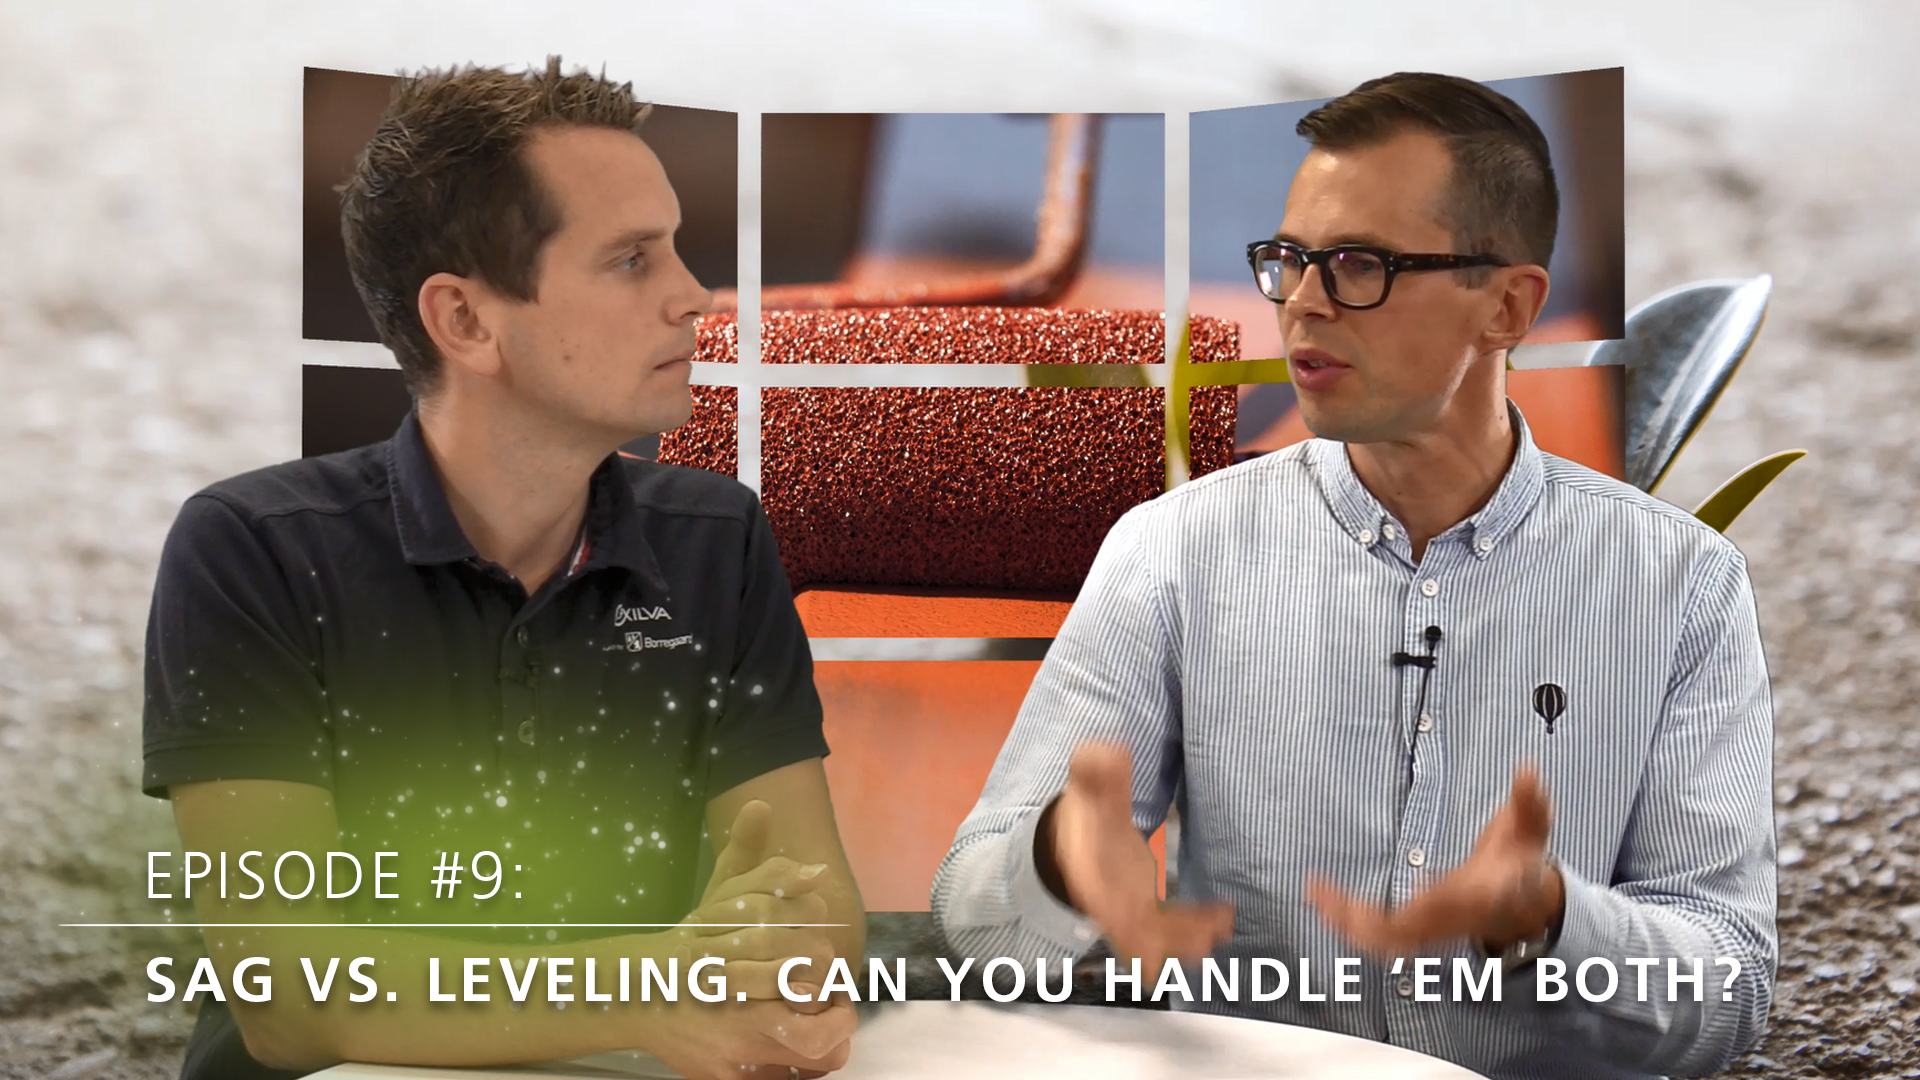 [VIDEO] Topic tuesday: Sag vs. leveling. Can you handle 'em both?